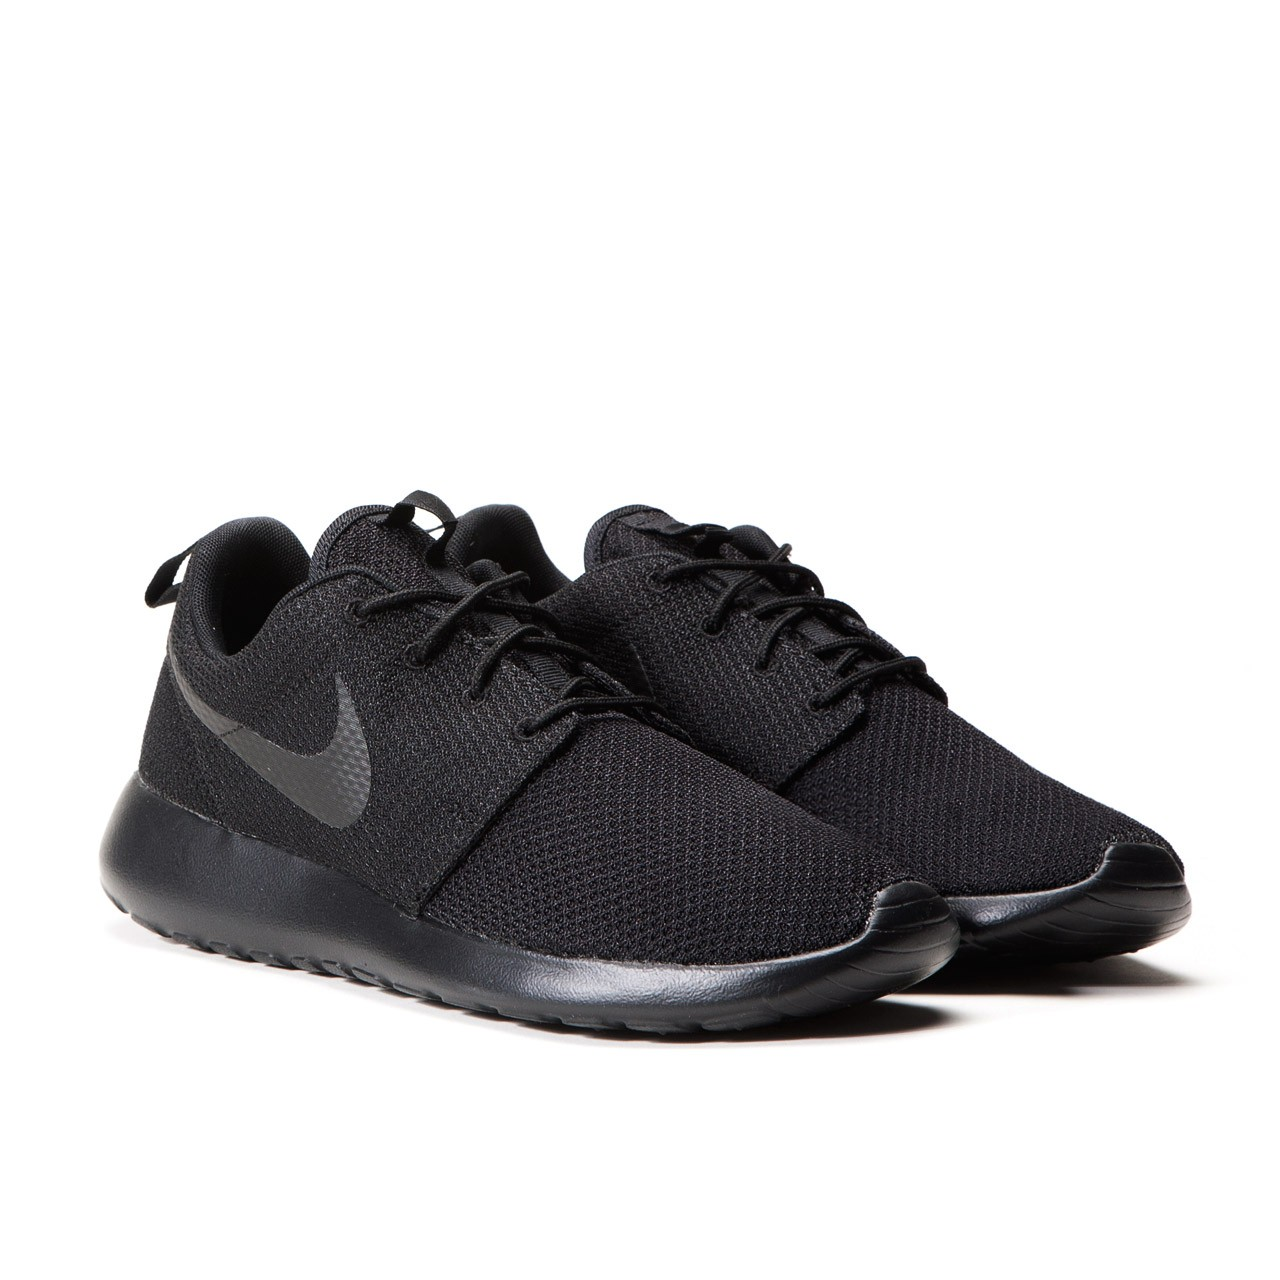 9b82c8271040 ... get nike nike roshe one mens sneakers 511881 026 walmart 668c2 cbe79  netherlands nike roshe run mens shoes ...